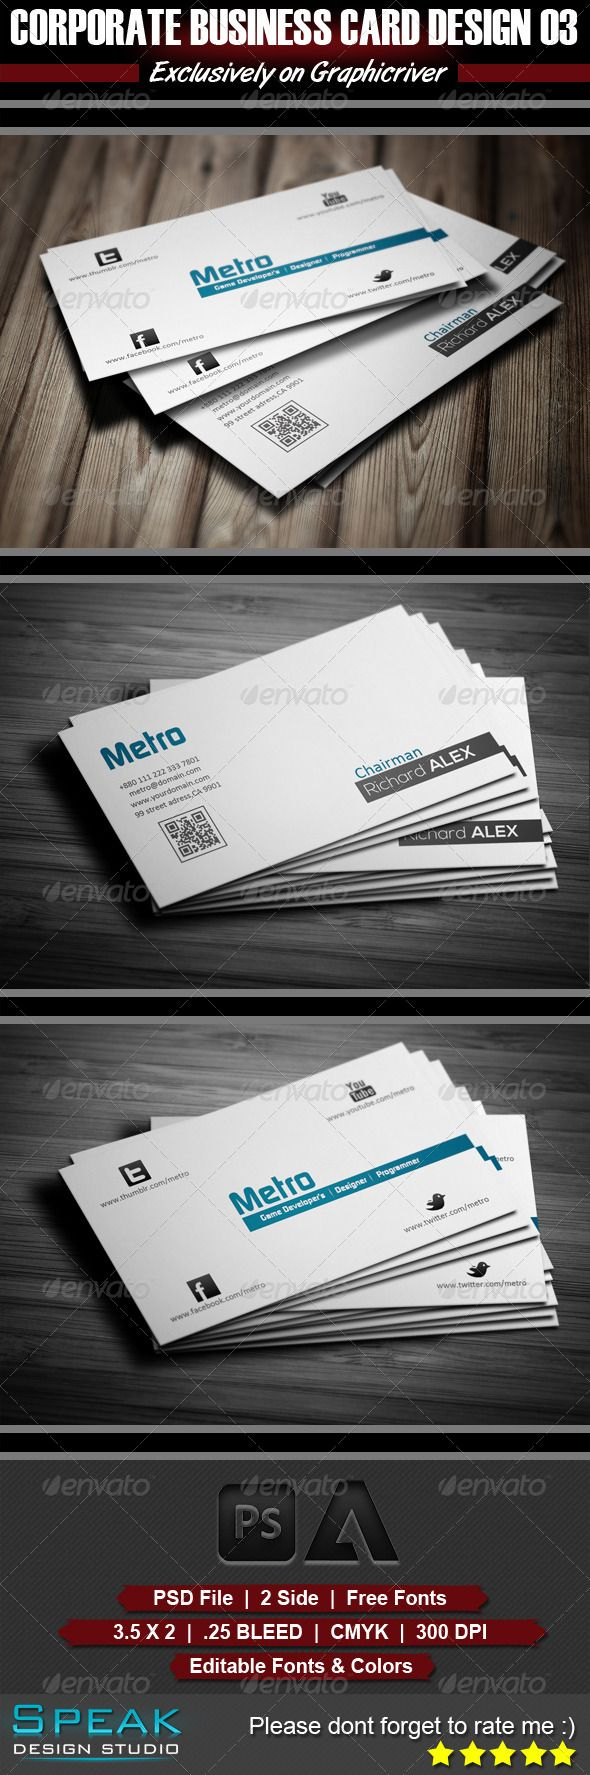 Creative Business Card Design 03 #GraphicRiver Creative Business Card Design 03 Type: Business or Personal use. 2 Sided Card easy to modify & Print Ready. Details: ? Fully Layered PSD files ? Fully Customizable and Editable ? CMYK Setting ? 300 DPI High Resolution ? Print Ready Format ? Horizontal Orientation ? Font Used Links: FontS: 1. Continuum: .dafont /continuum.font 2. Nexa: .fontsquirrel /fonts/nexa 3. Calibri: .fonts /font/microsoft-corporation/calibri/regular Files Included * 2 PSD…